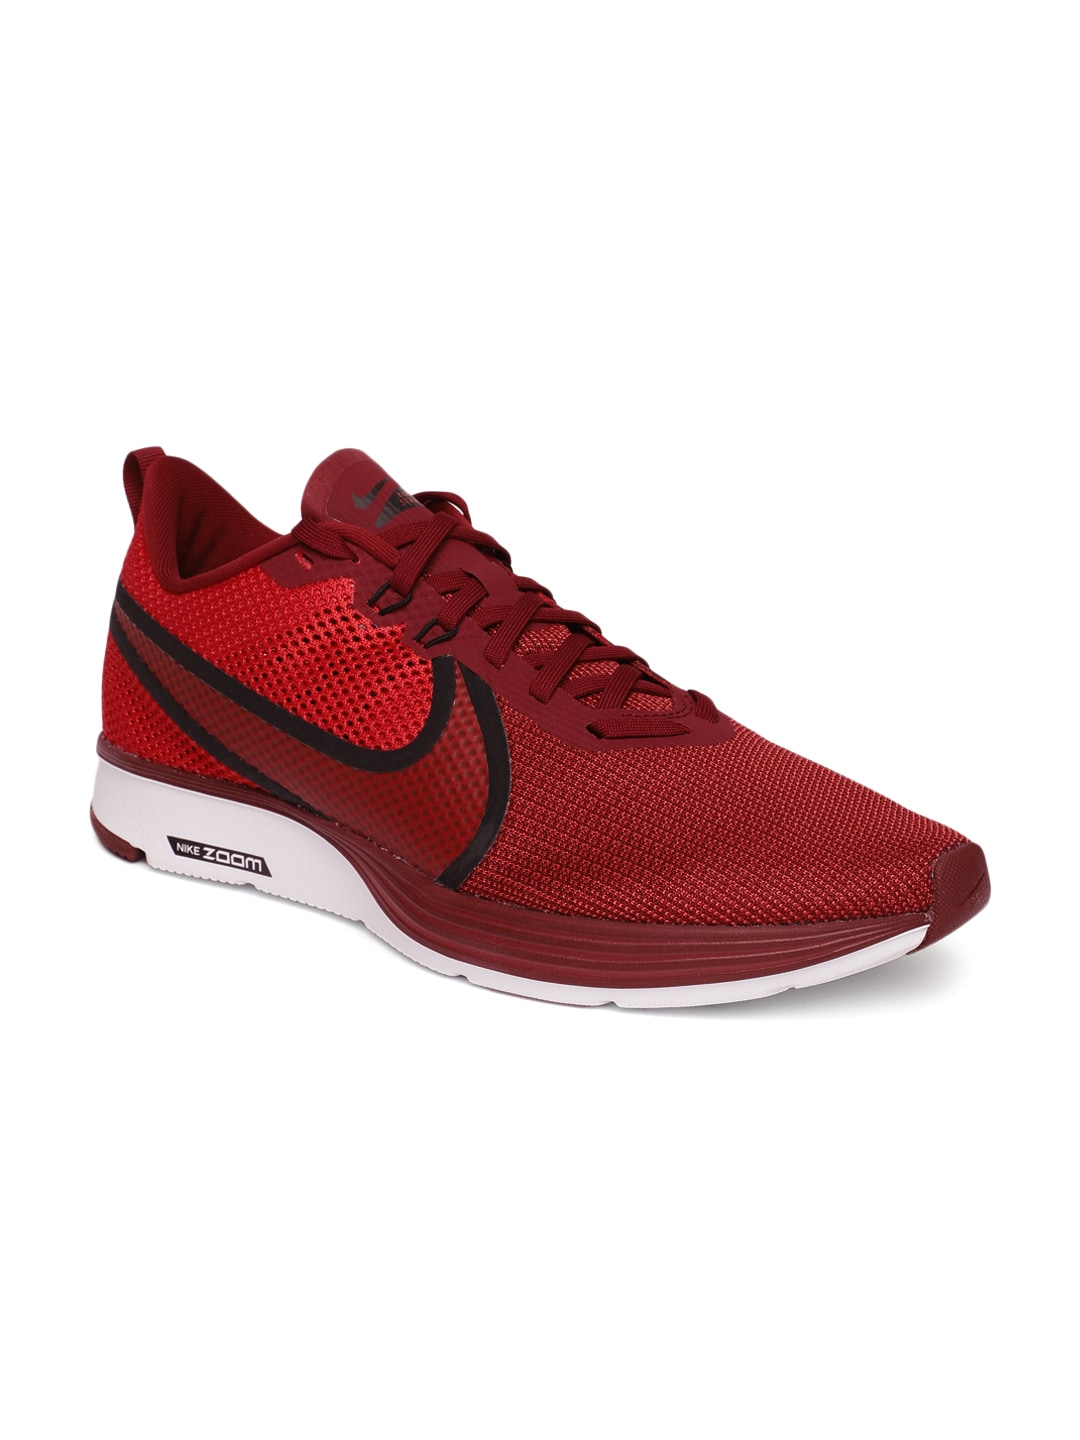 Nike Running Shoes - Buy Nike Running Shoes Online  60a8ce5c20d6